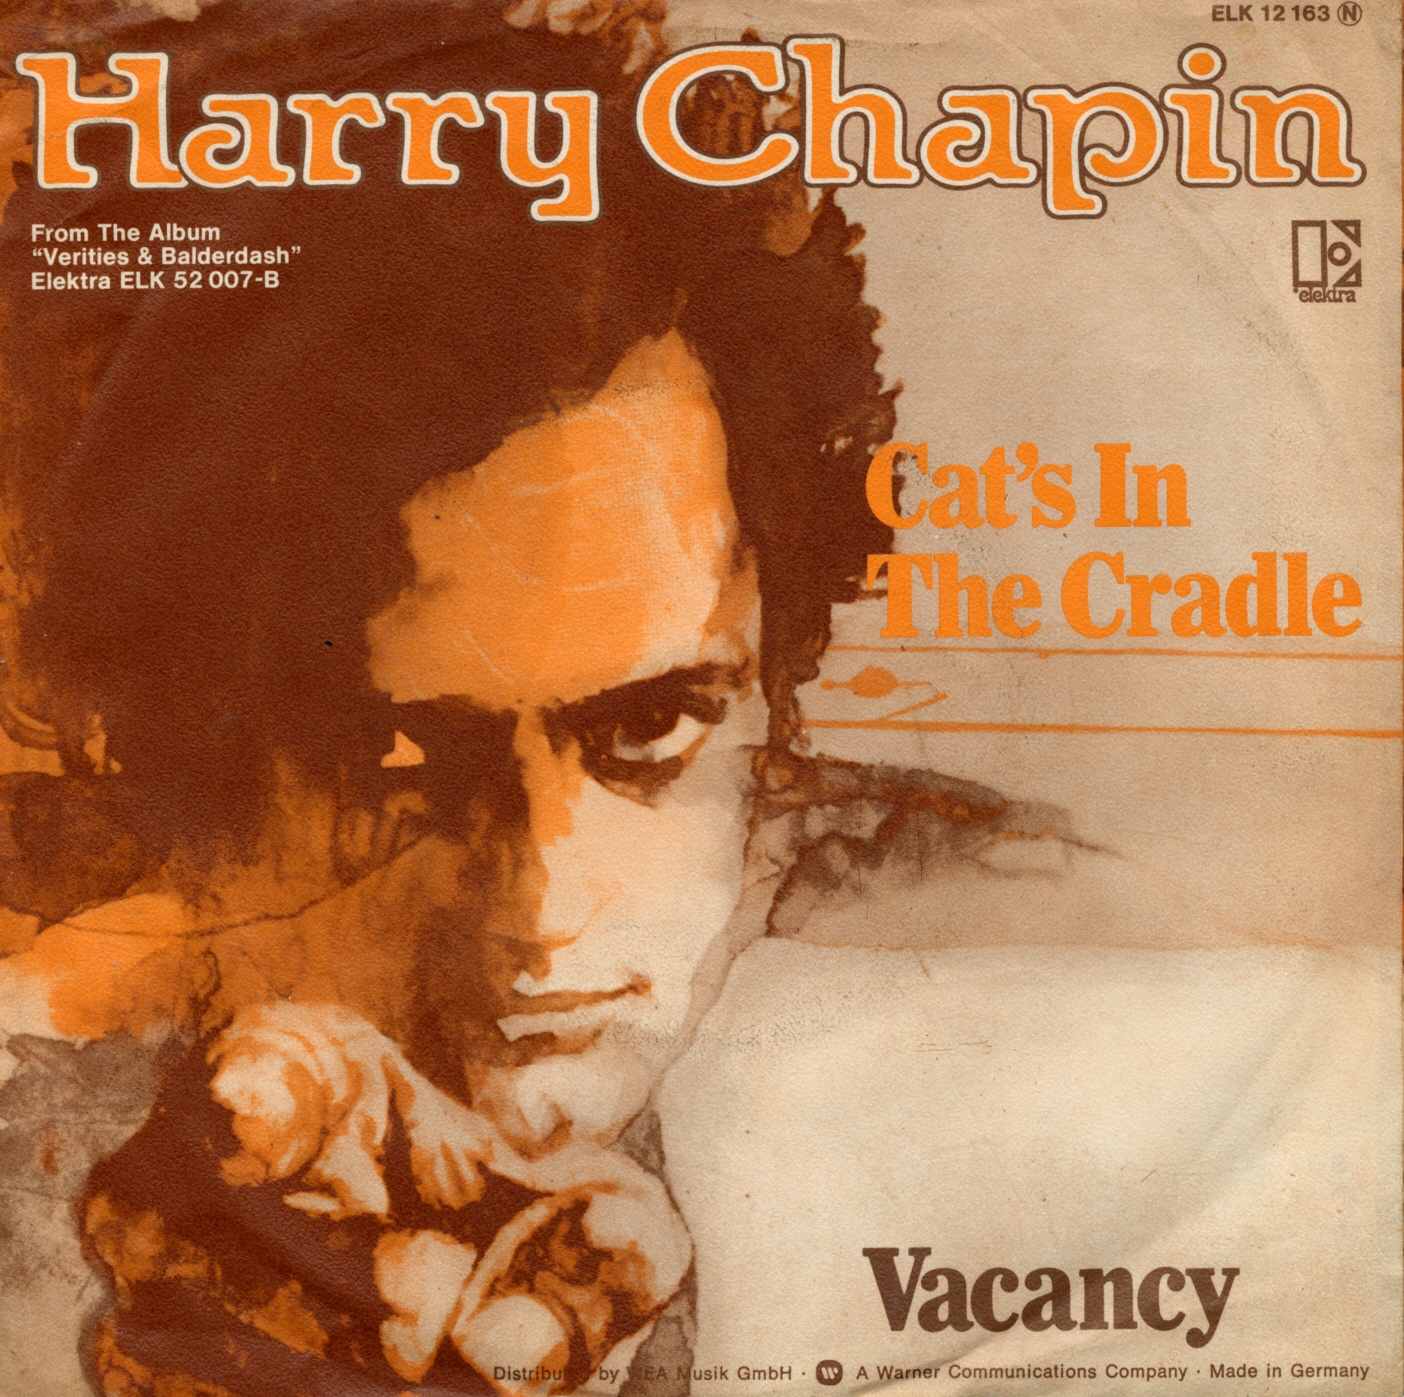 Cover: Cat's in the cradle, Harry Chapin